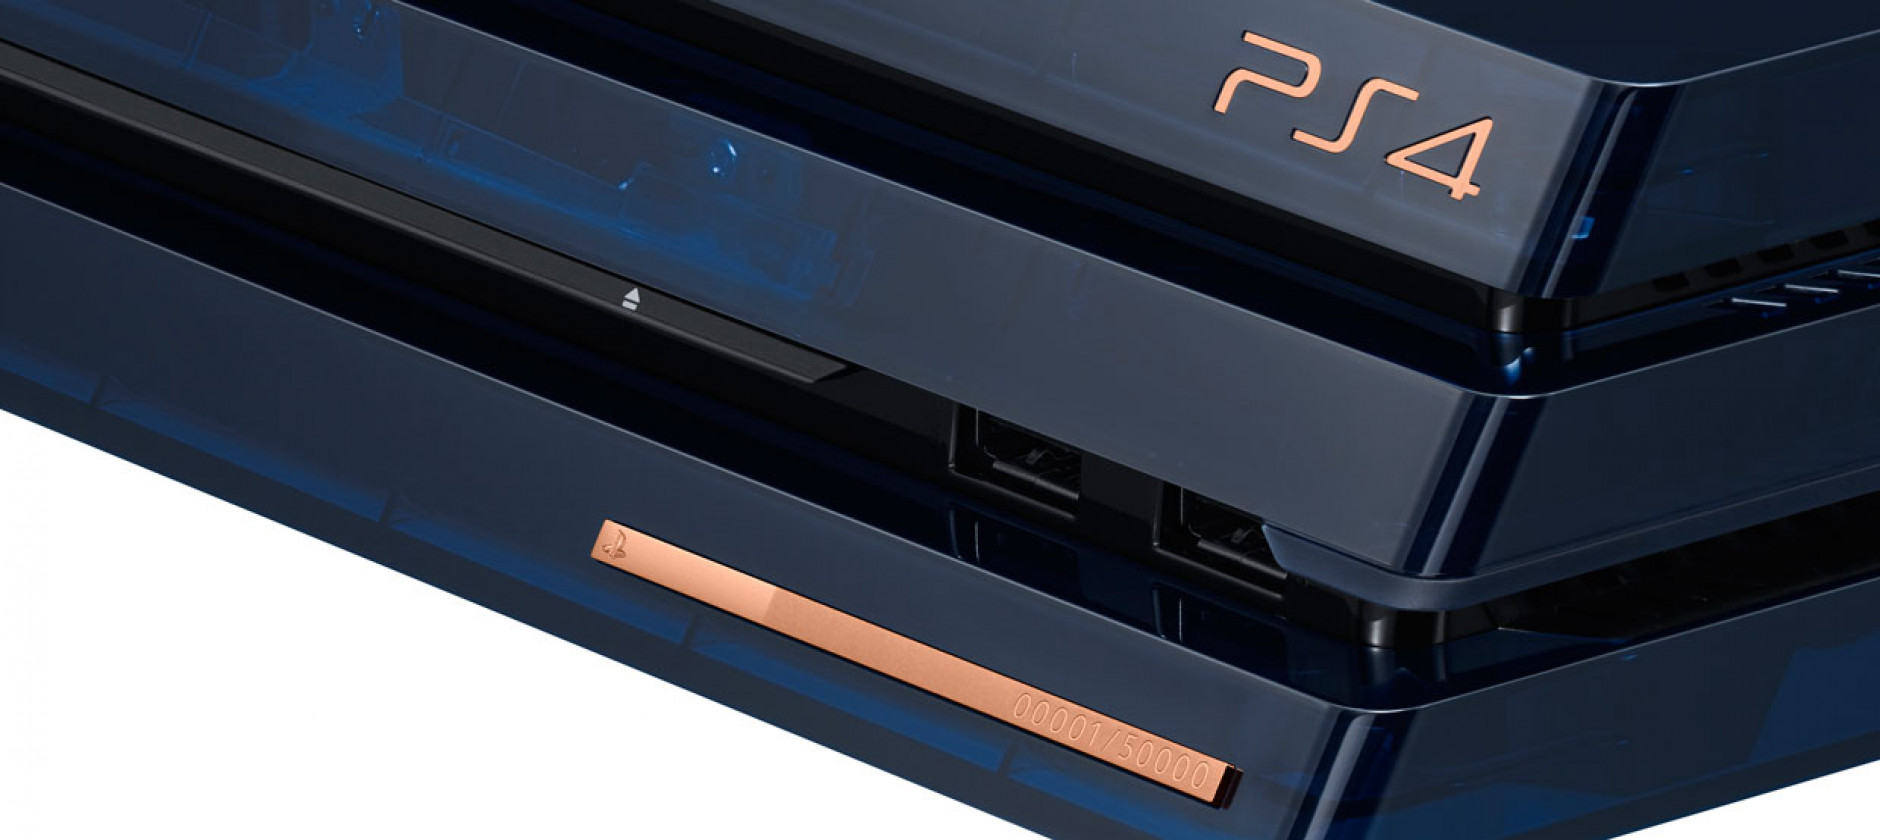 Sony festeggia la PS4 con l'edizione speciale 500 Million Limited Edition